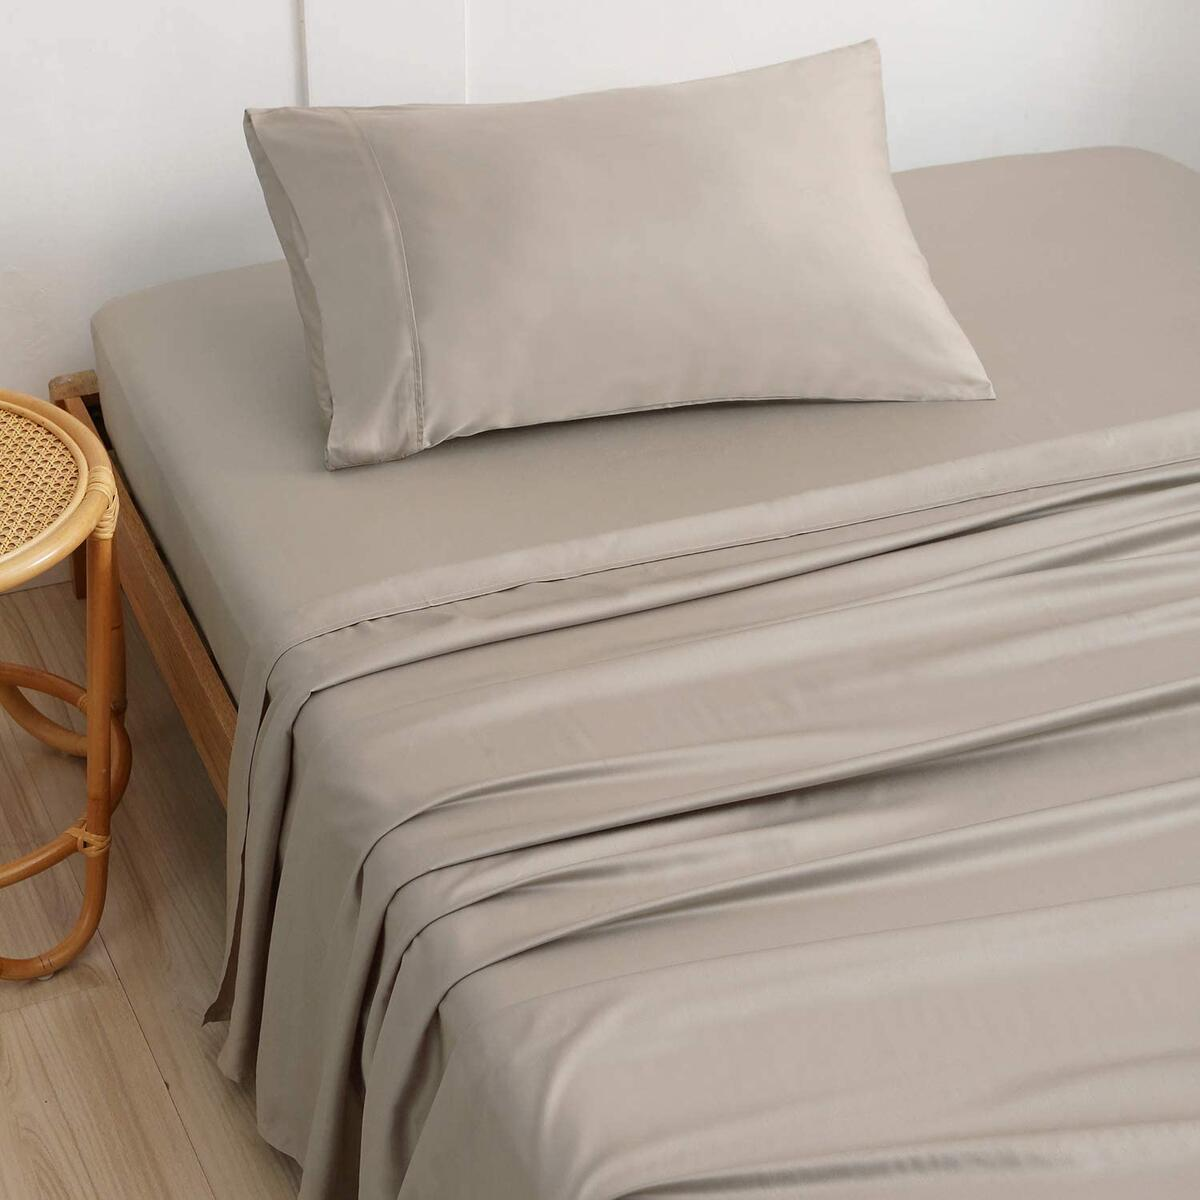 IBAMA 100% Bamboo Bed Sheet Set with Pillowcases 3 Pieces Including Mattress Protector Pillowcase Bedding Fitted Sheets Breathable and Machine Washable Twin Size